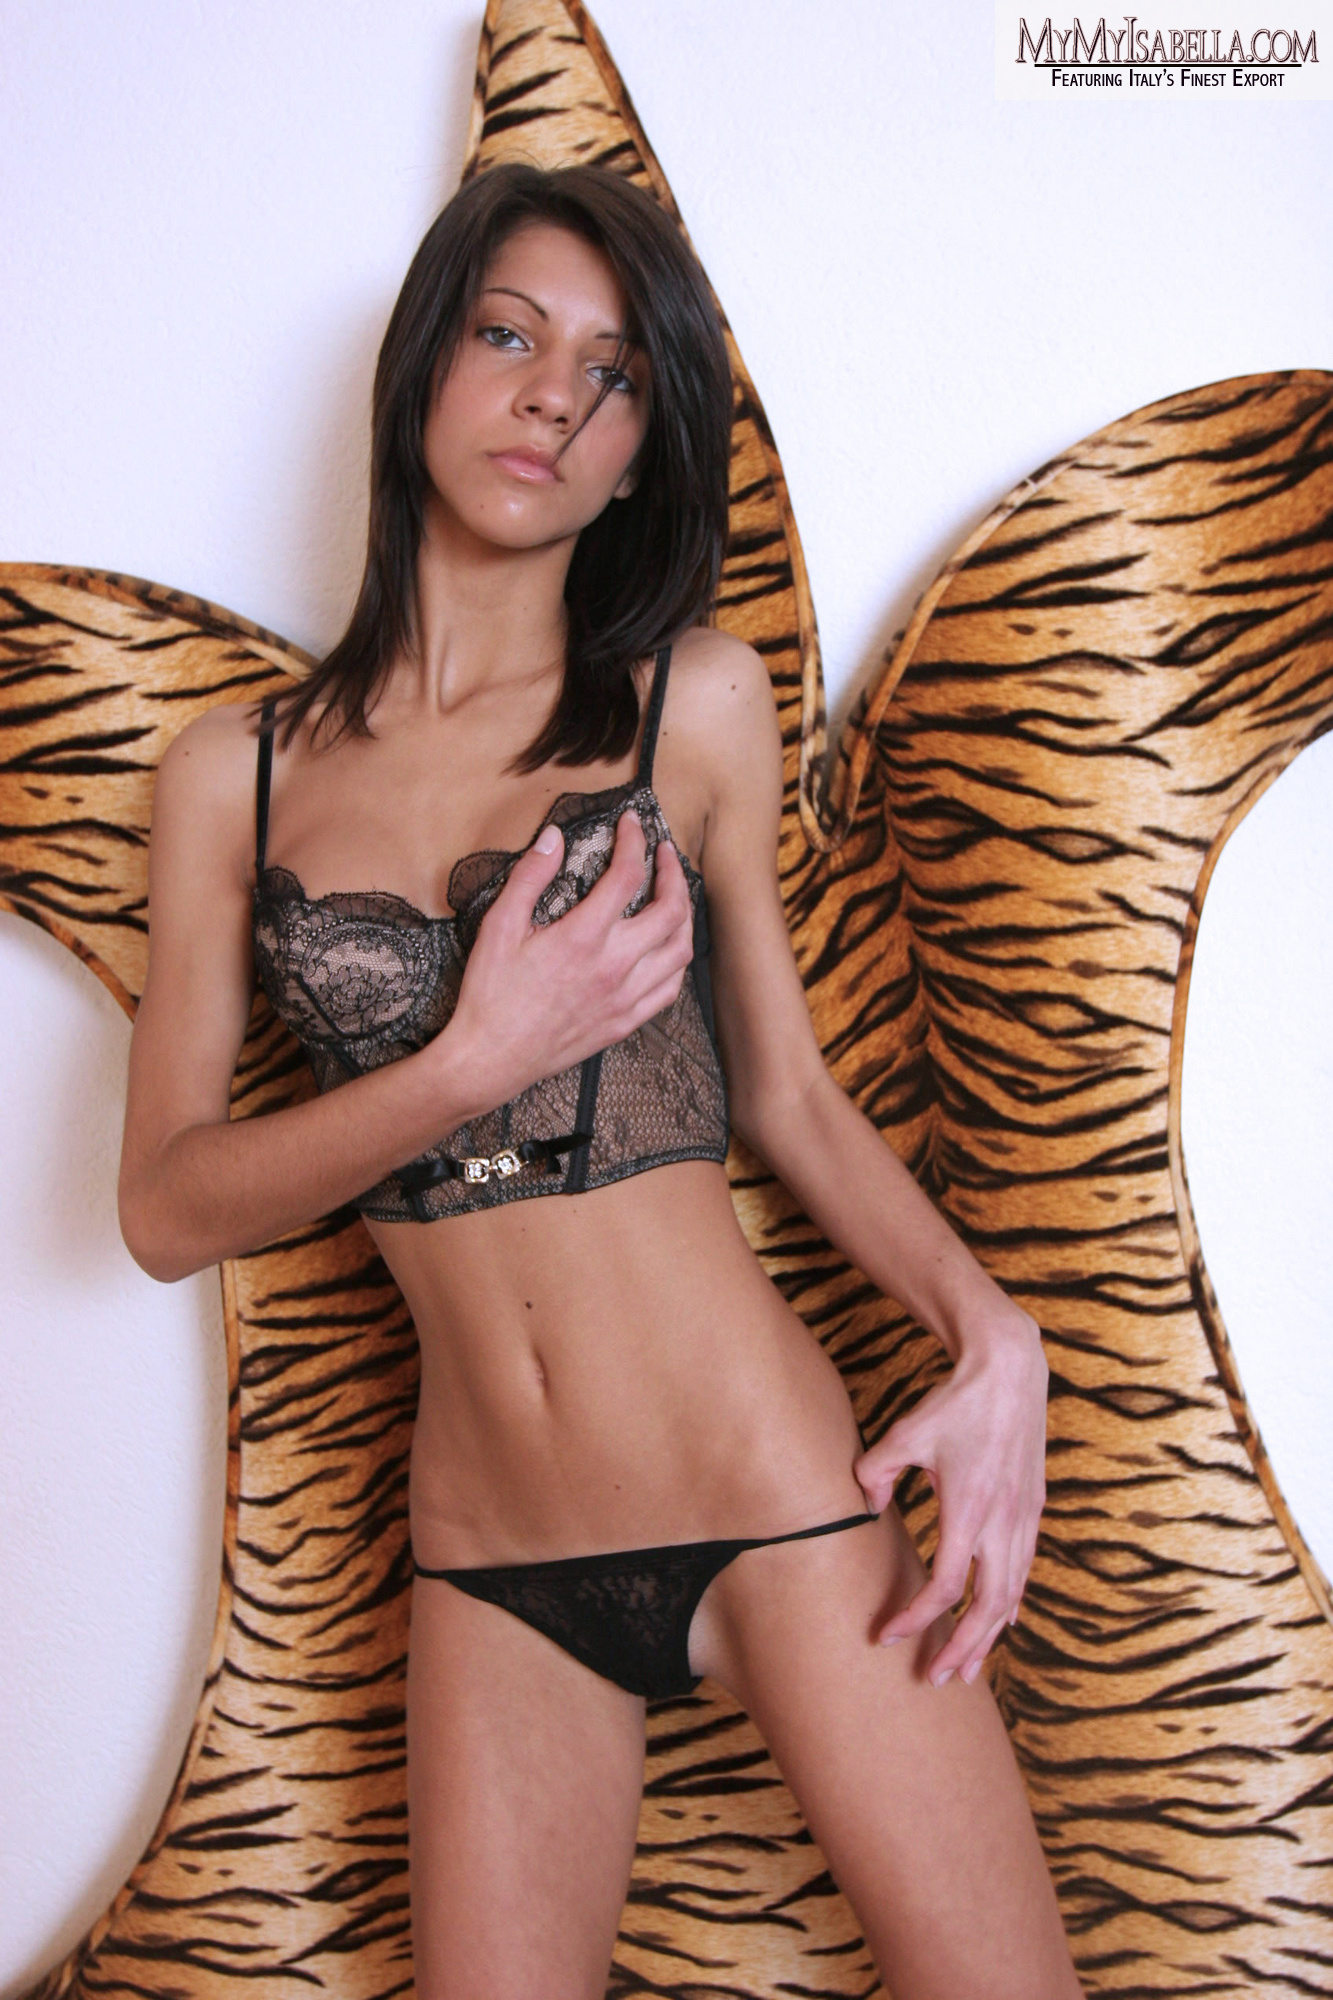 image My italian hot for clips visit my uploads